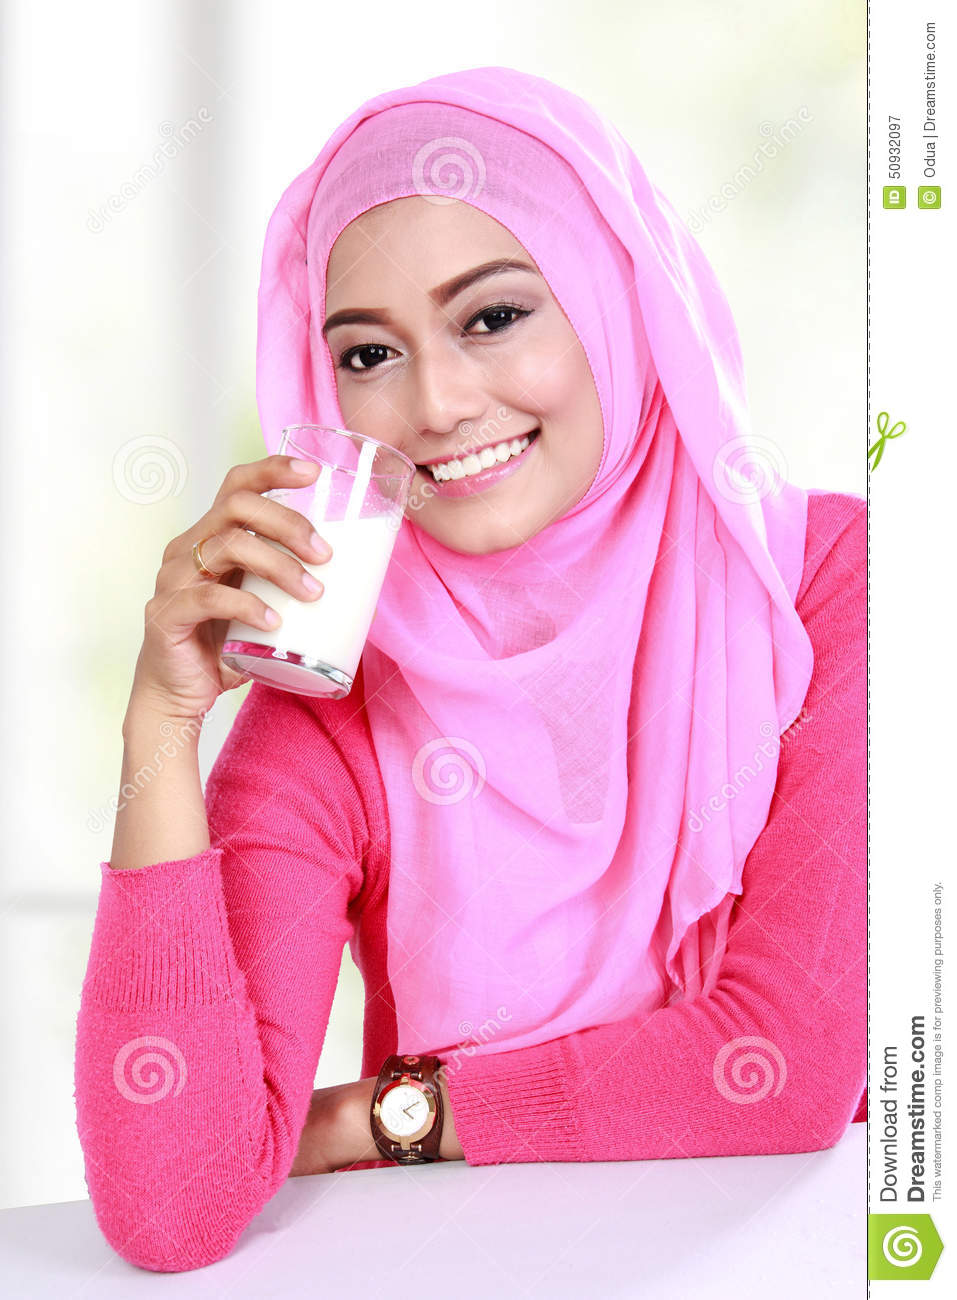 dairy muslim single women We are leading online dating site for beautiful women and men date, meet, chat, and create relationships with other people.